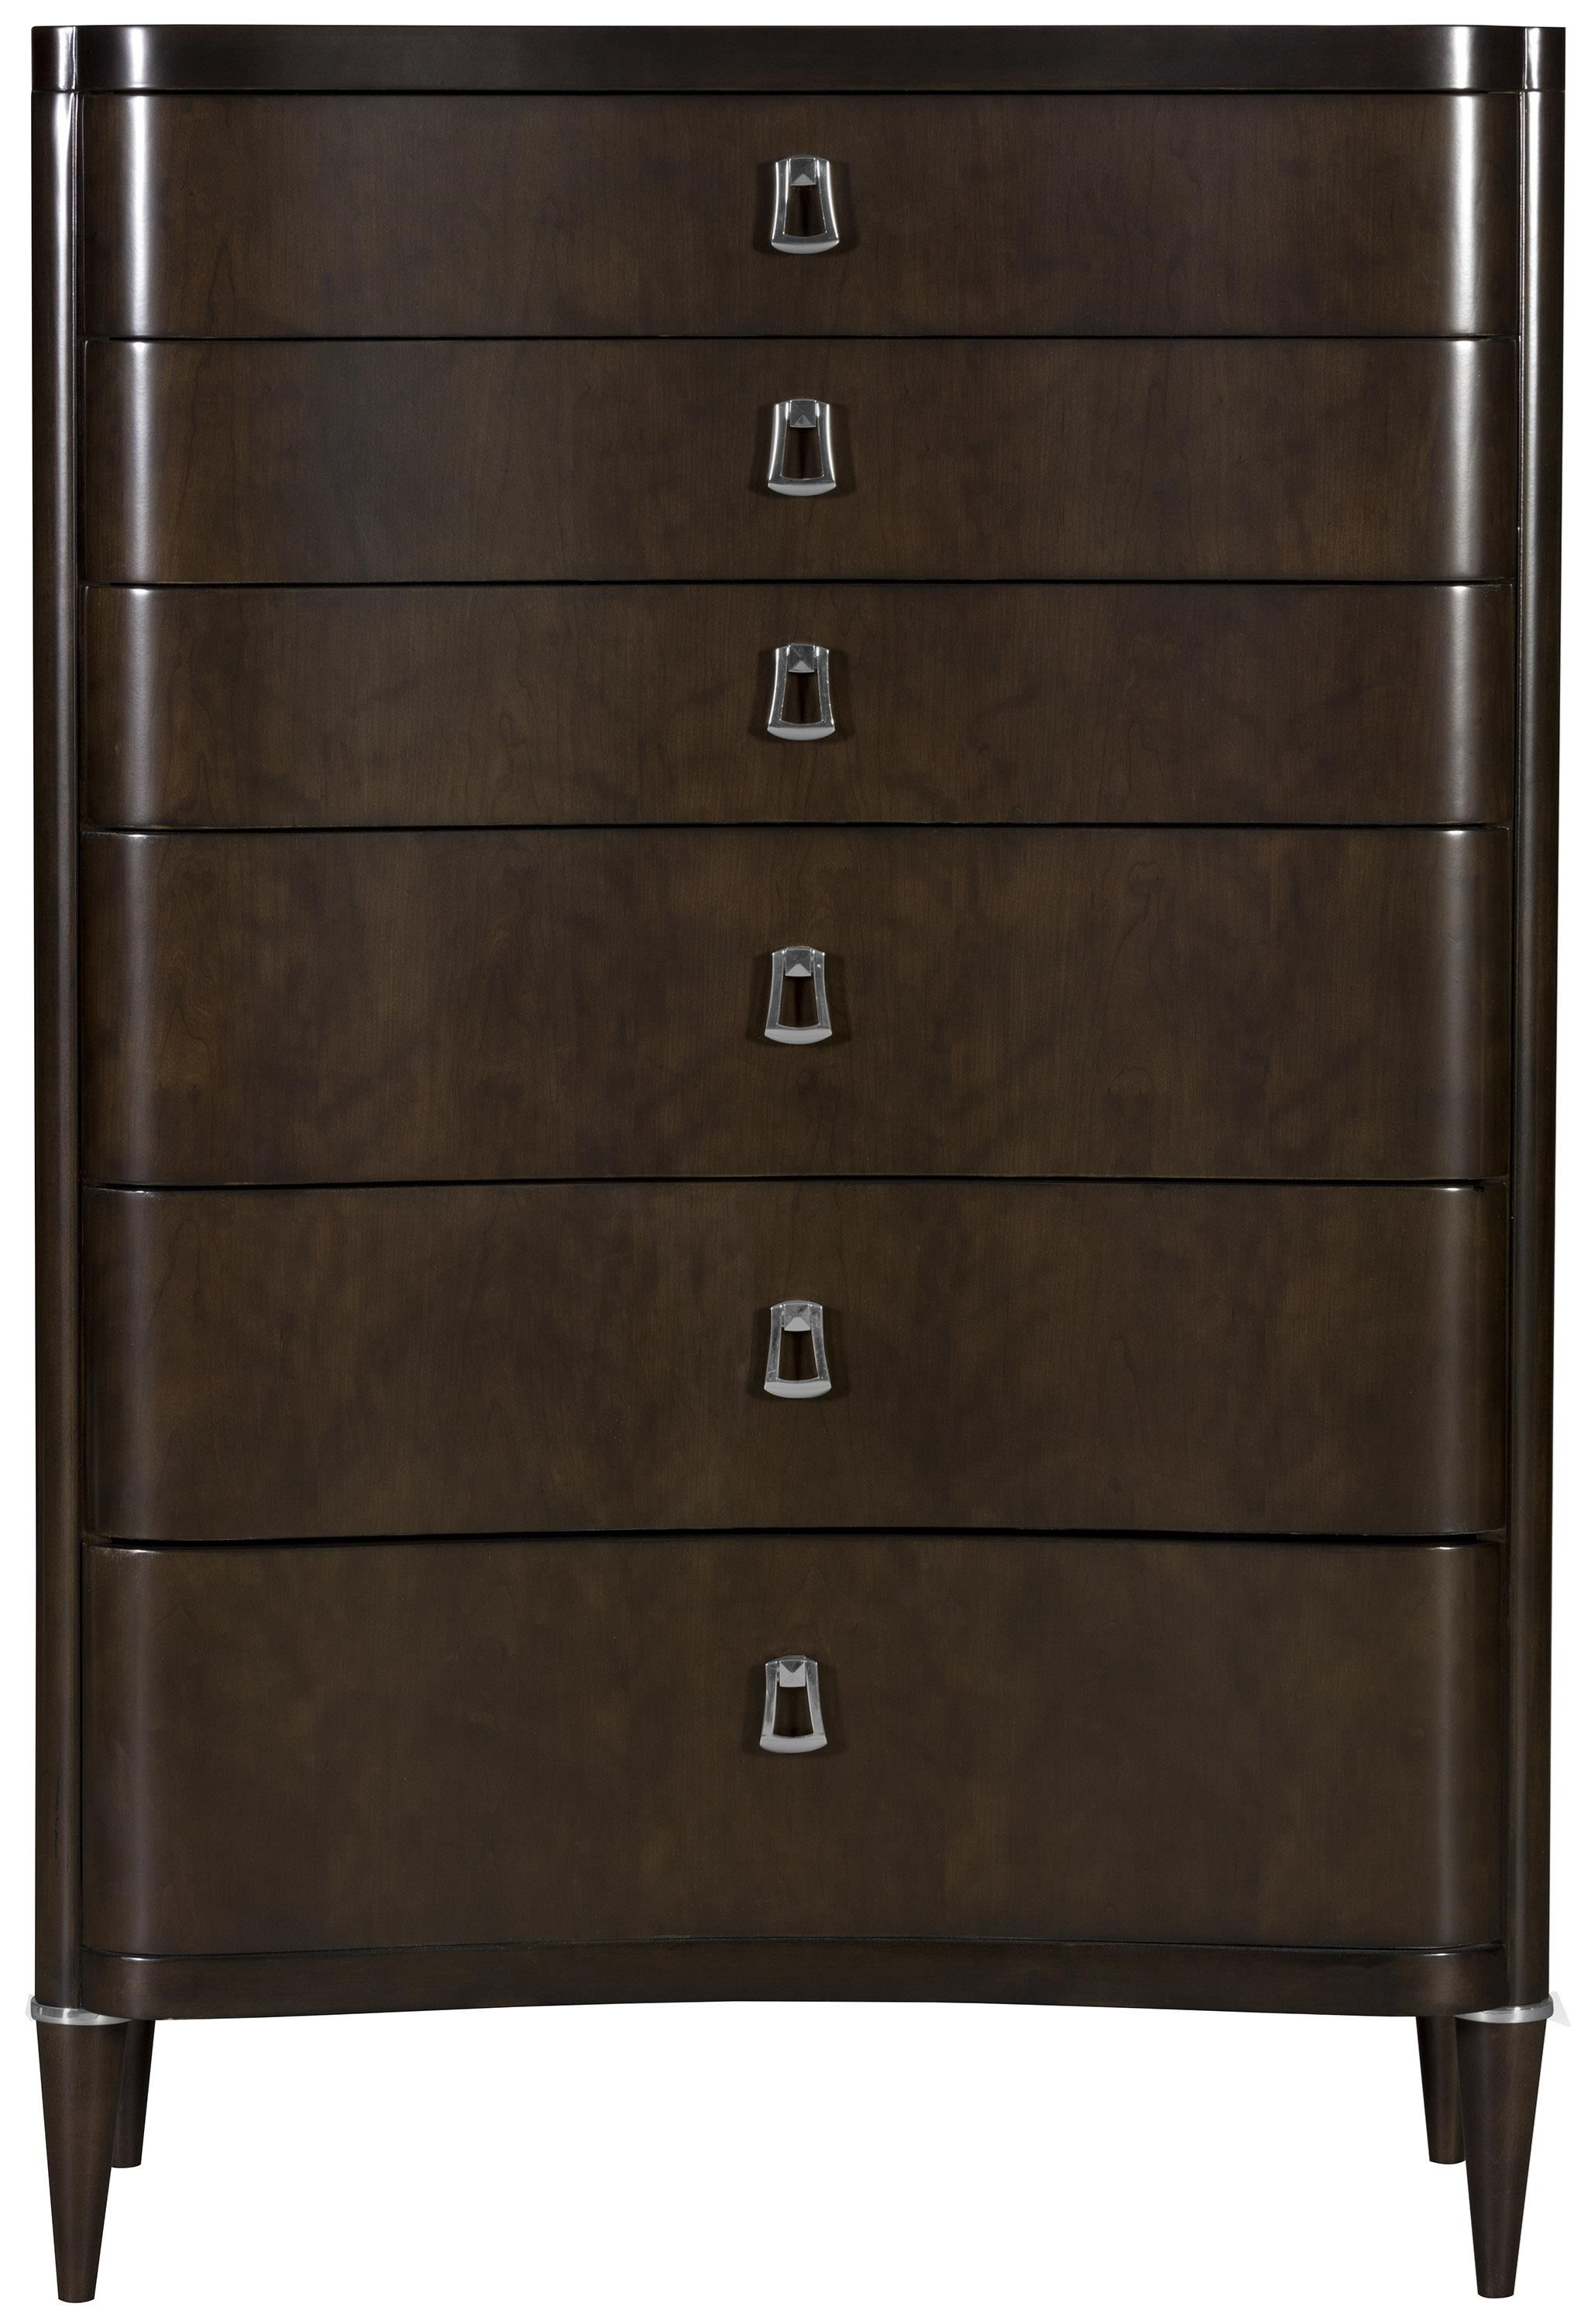 Lillet Bedroom Tall Chest by Vanguard Furniture at Baer's Furniture